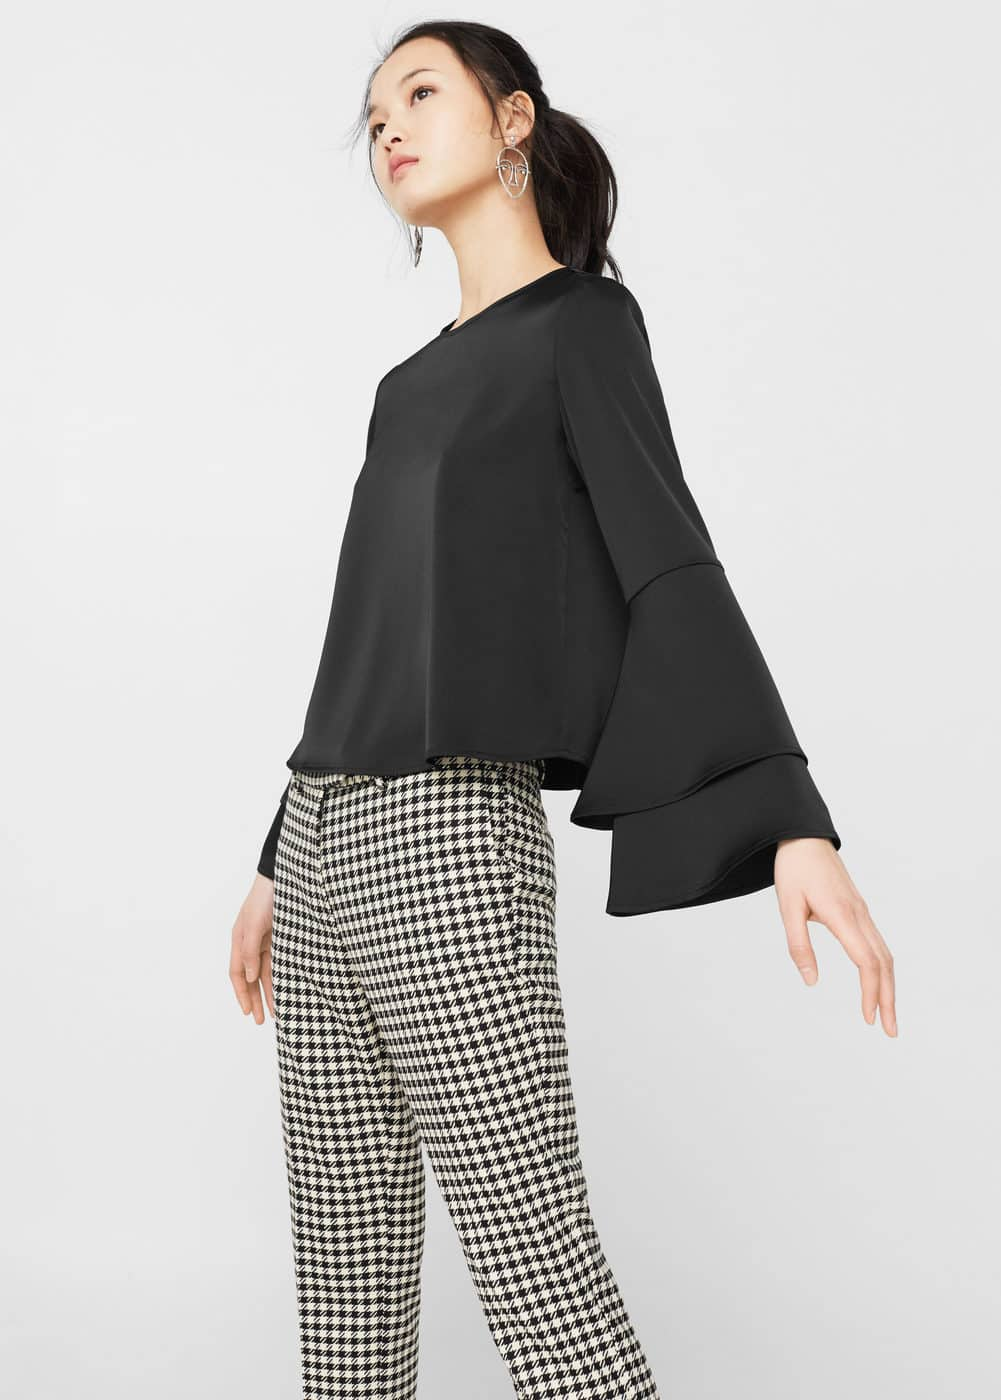 Mango Black Frill Sleeve Blouse